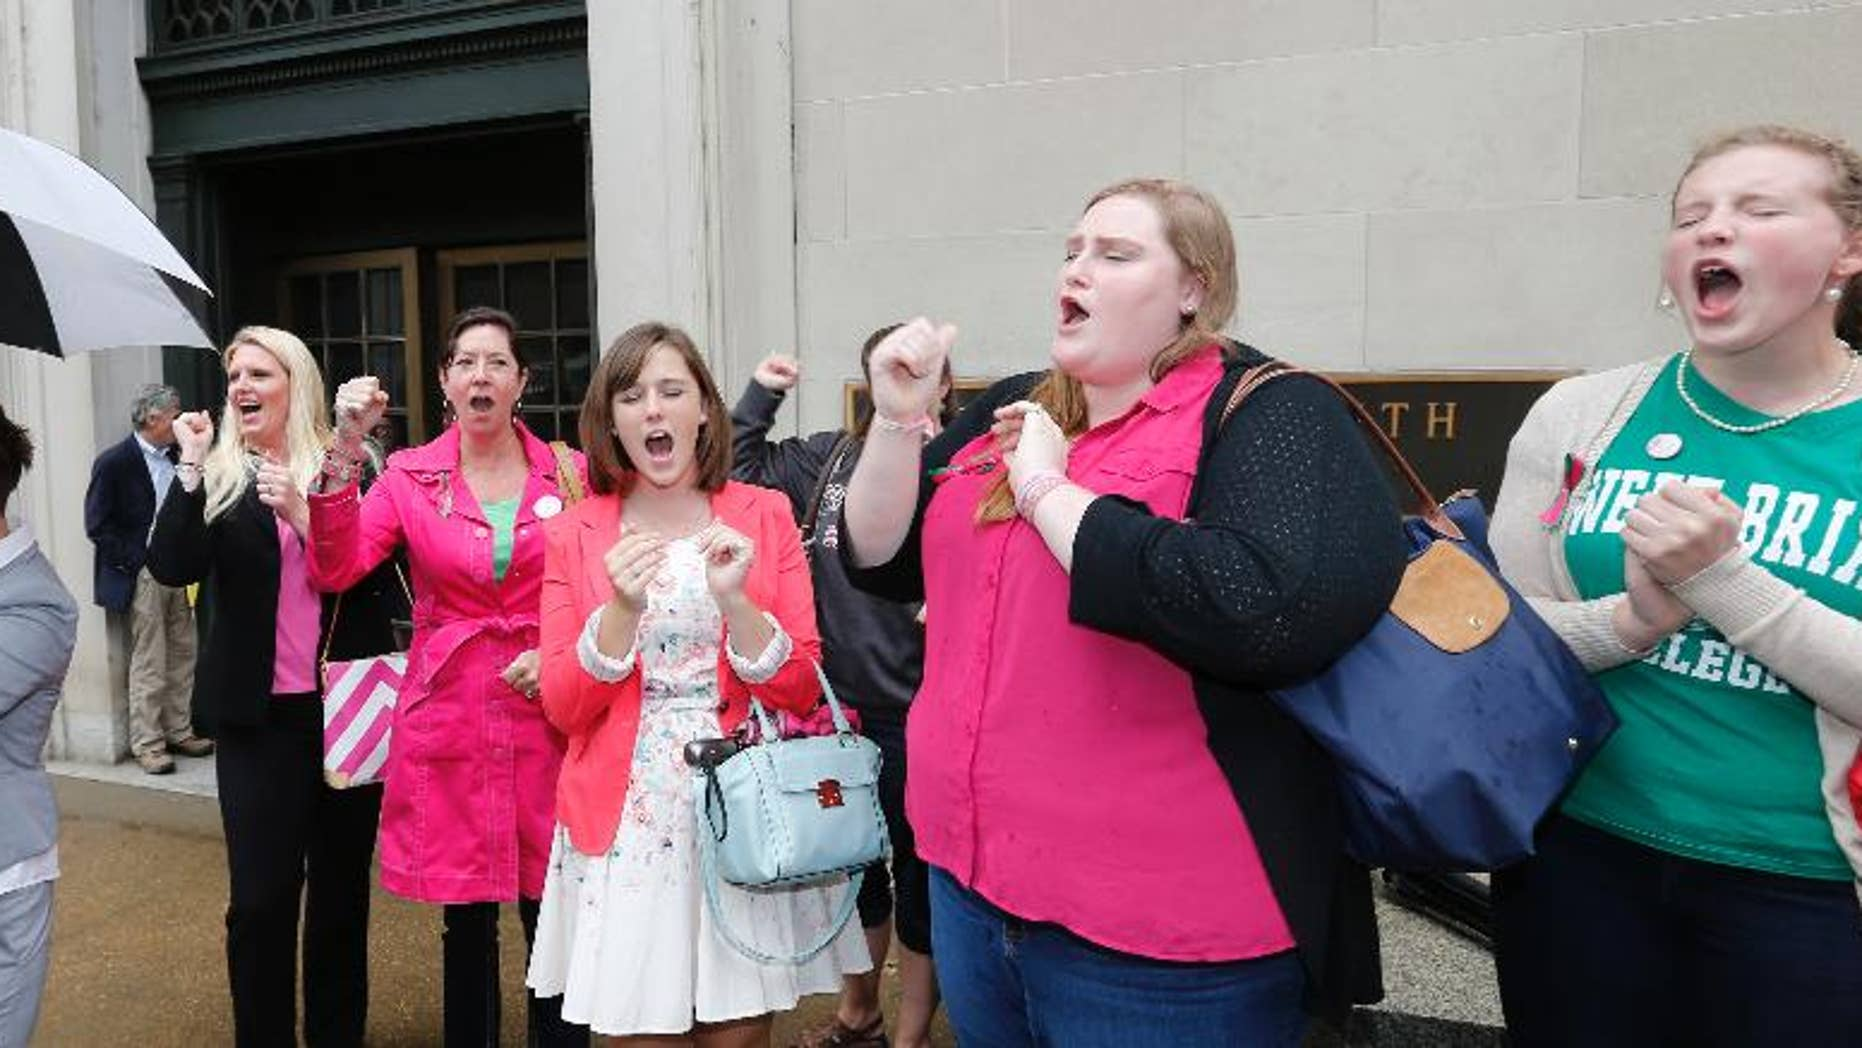 FILE - In a Thursday, June 4, 2015 file photo, Sweet Briar College alumni do a cheer for the school after a hearing on the closure of Sweet Briar college at the Supreme Court of Virginia in Richmond, Va. Sweet Briar President Phillip C. Stone marvels at the energy of passionate alumnae who helped save the school just a few months ago from closure. But he knows without a serious change in fortune, the salvation will only be temporary. (AP Photo/Steve Helber, File)